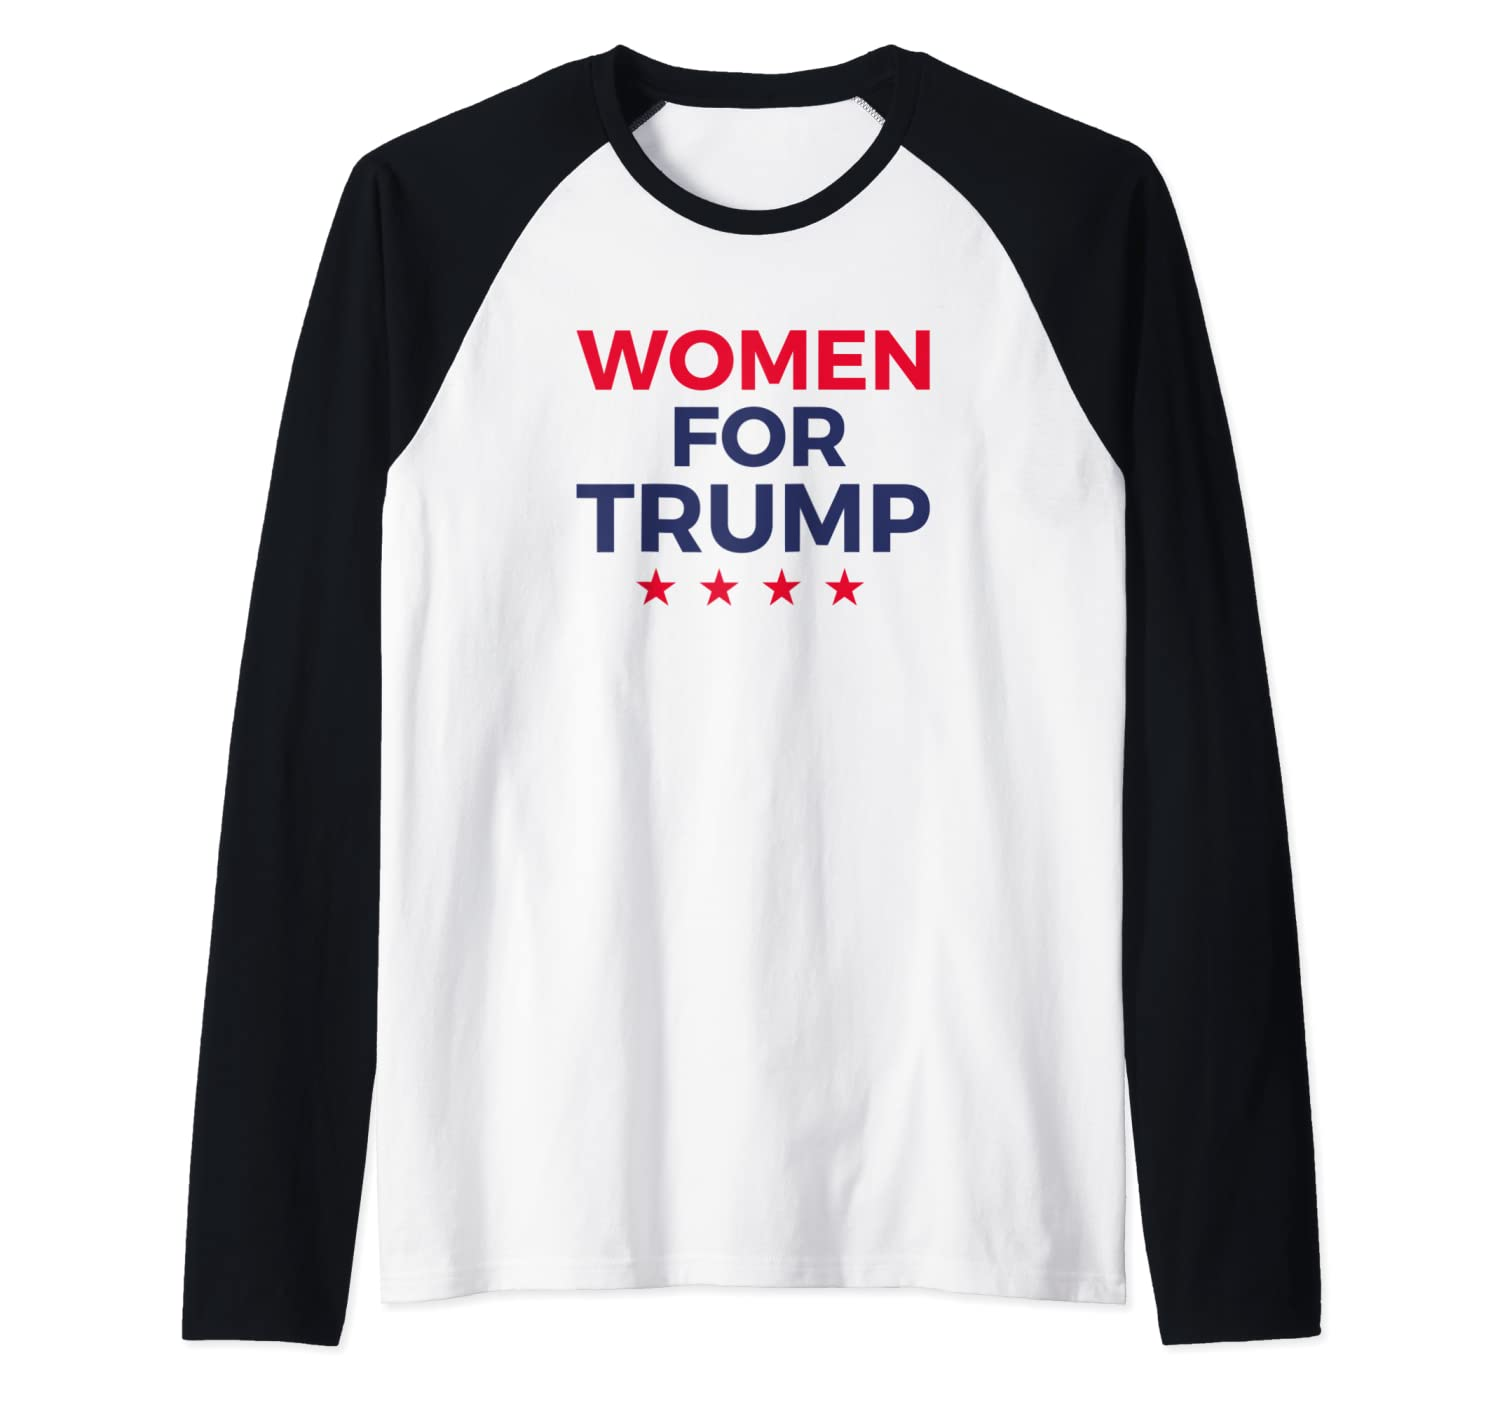 For Trump 2020 Presidential Campaign Support Baseball Shirts